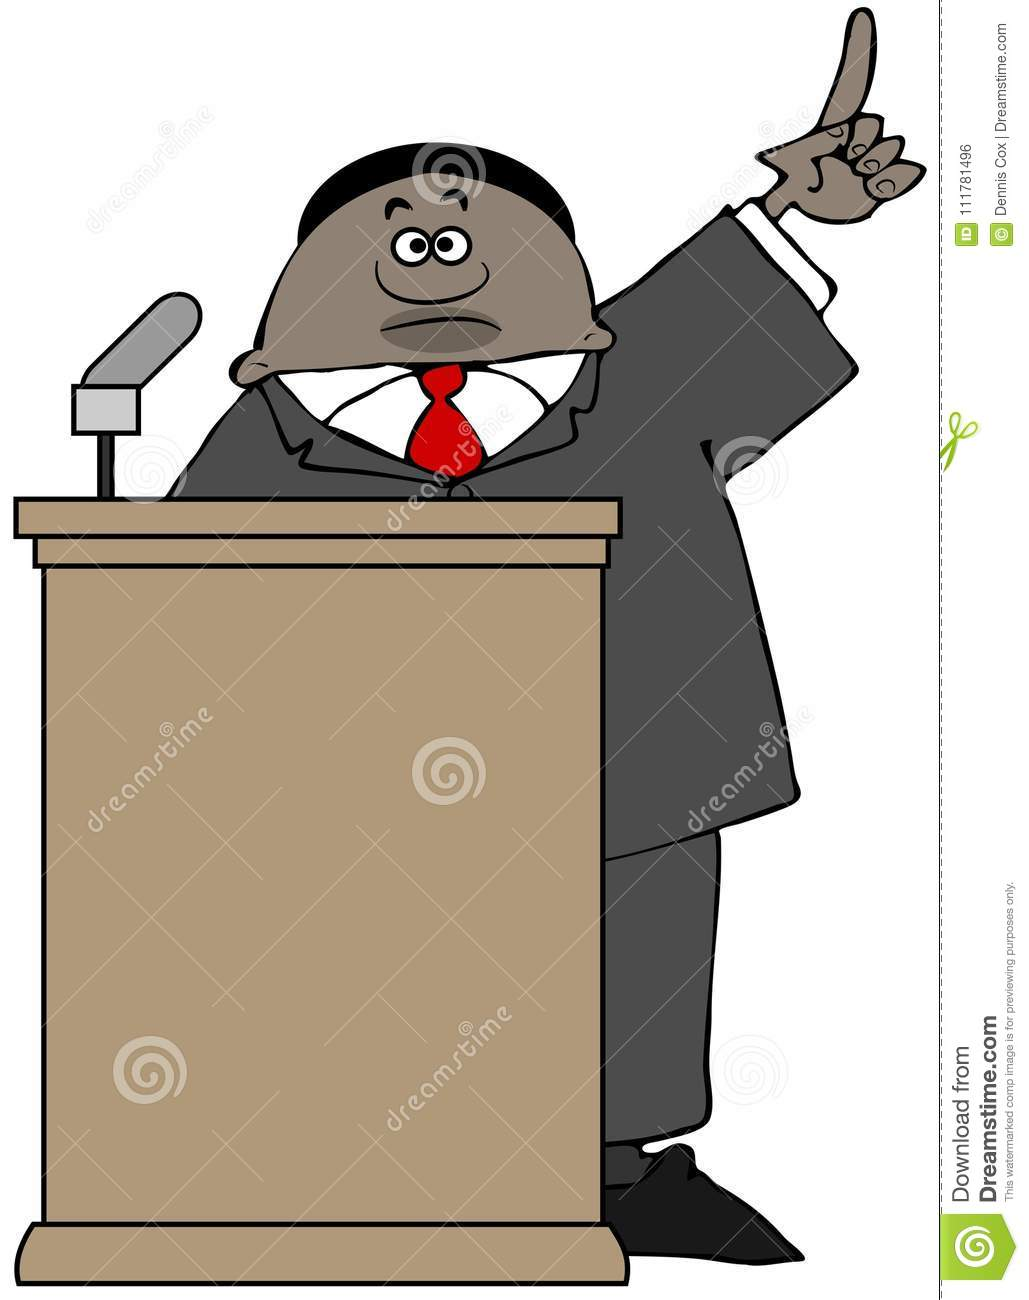 Politician giving a speech behind a podium